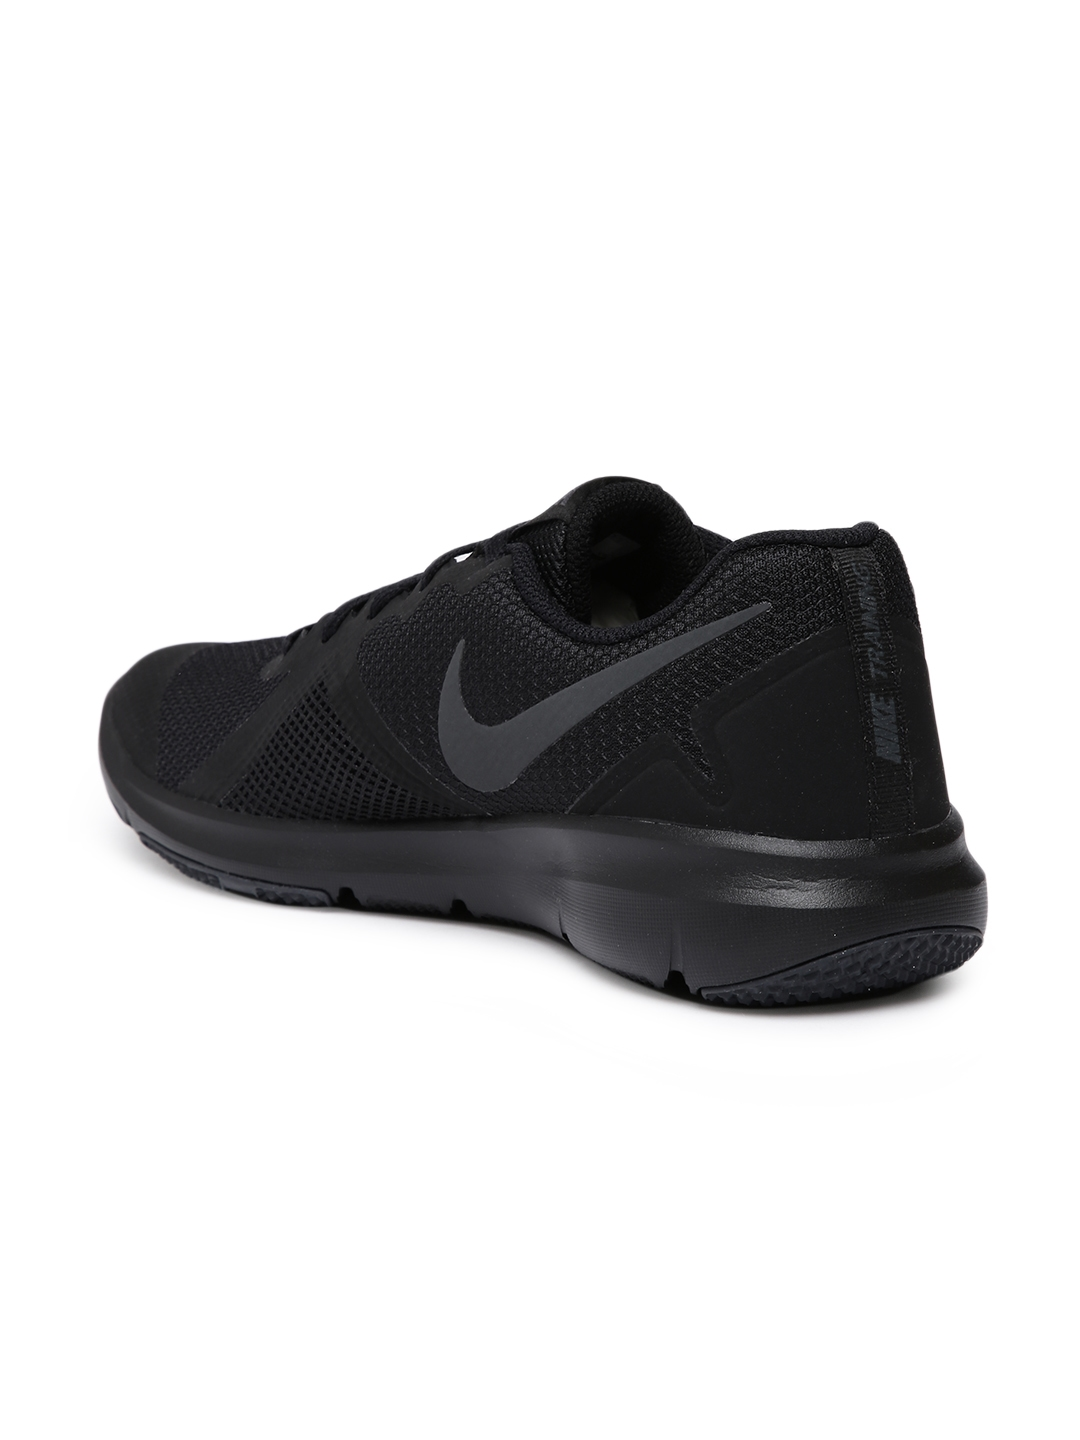 cc53676a46b49 Buy Nike Men Black FLEX CONTROL II Training Shoes - Sports Shoes for ...